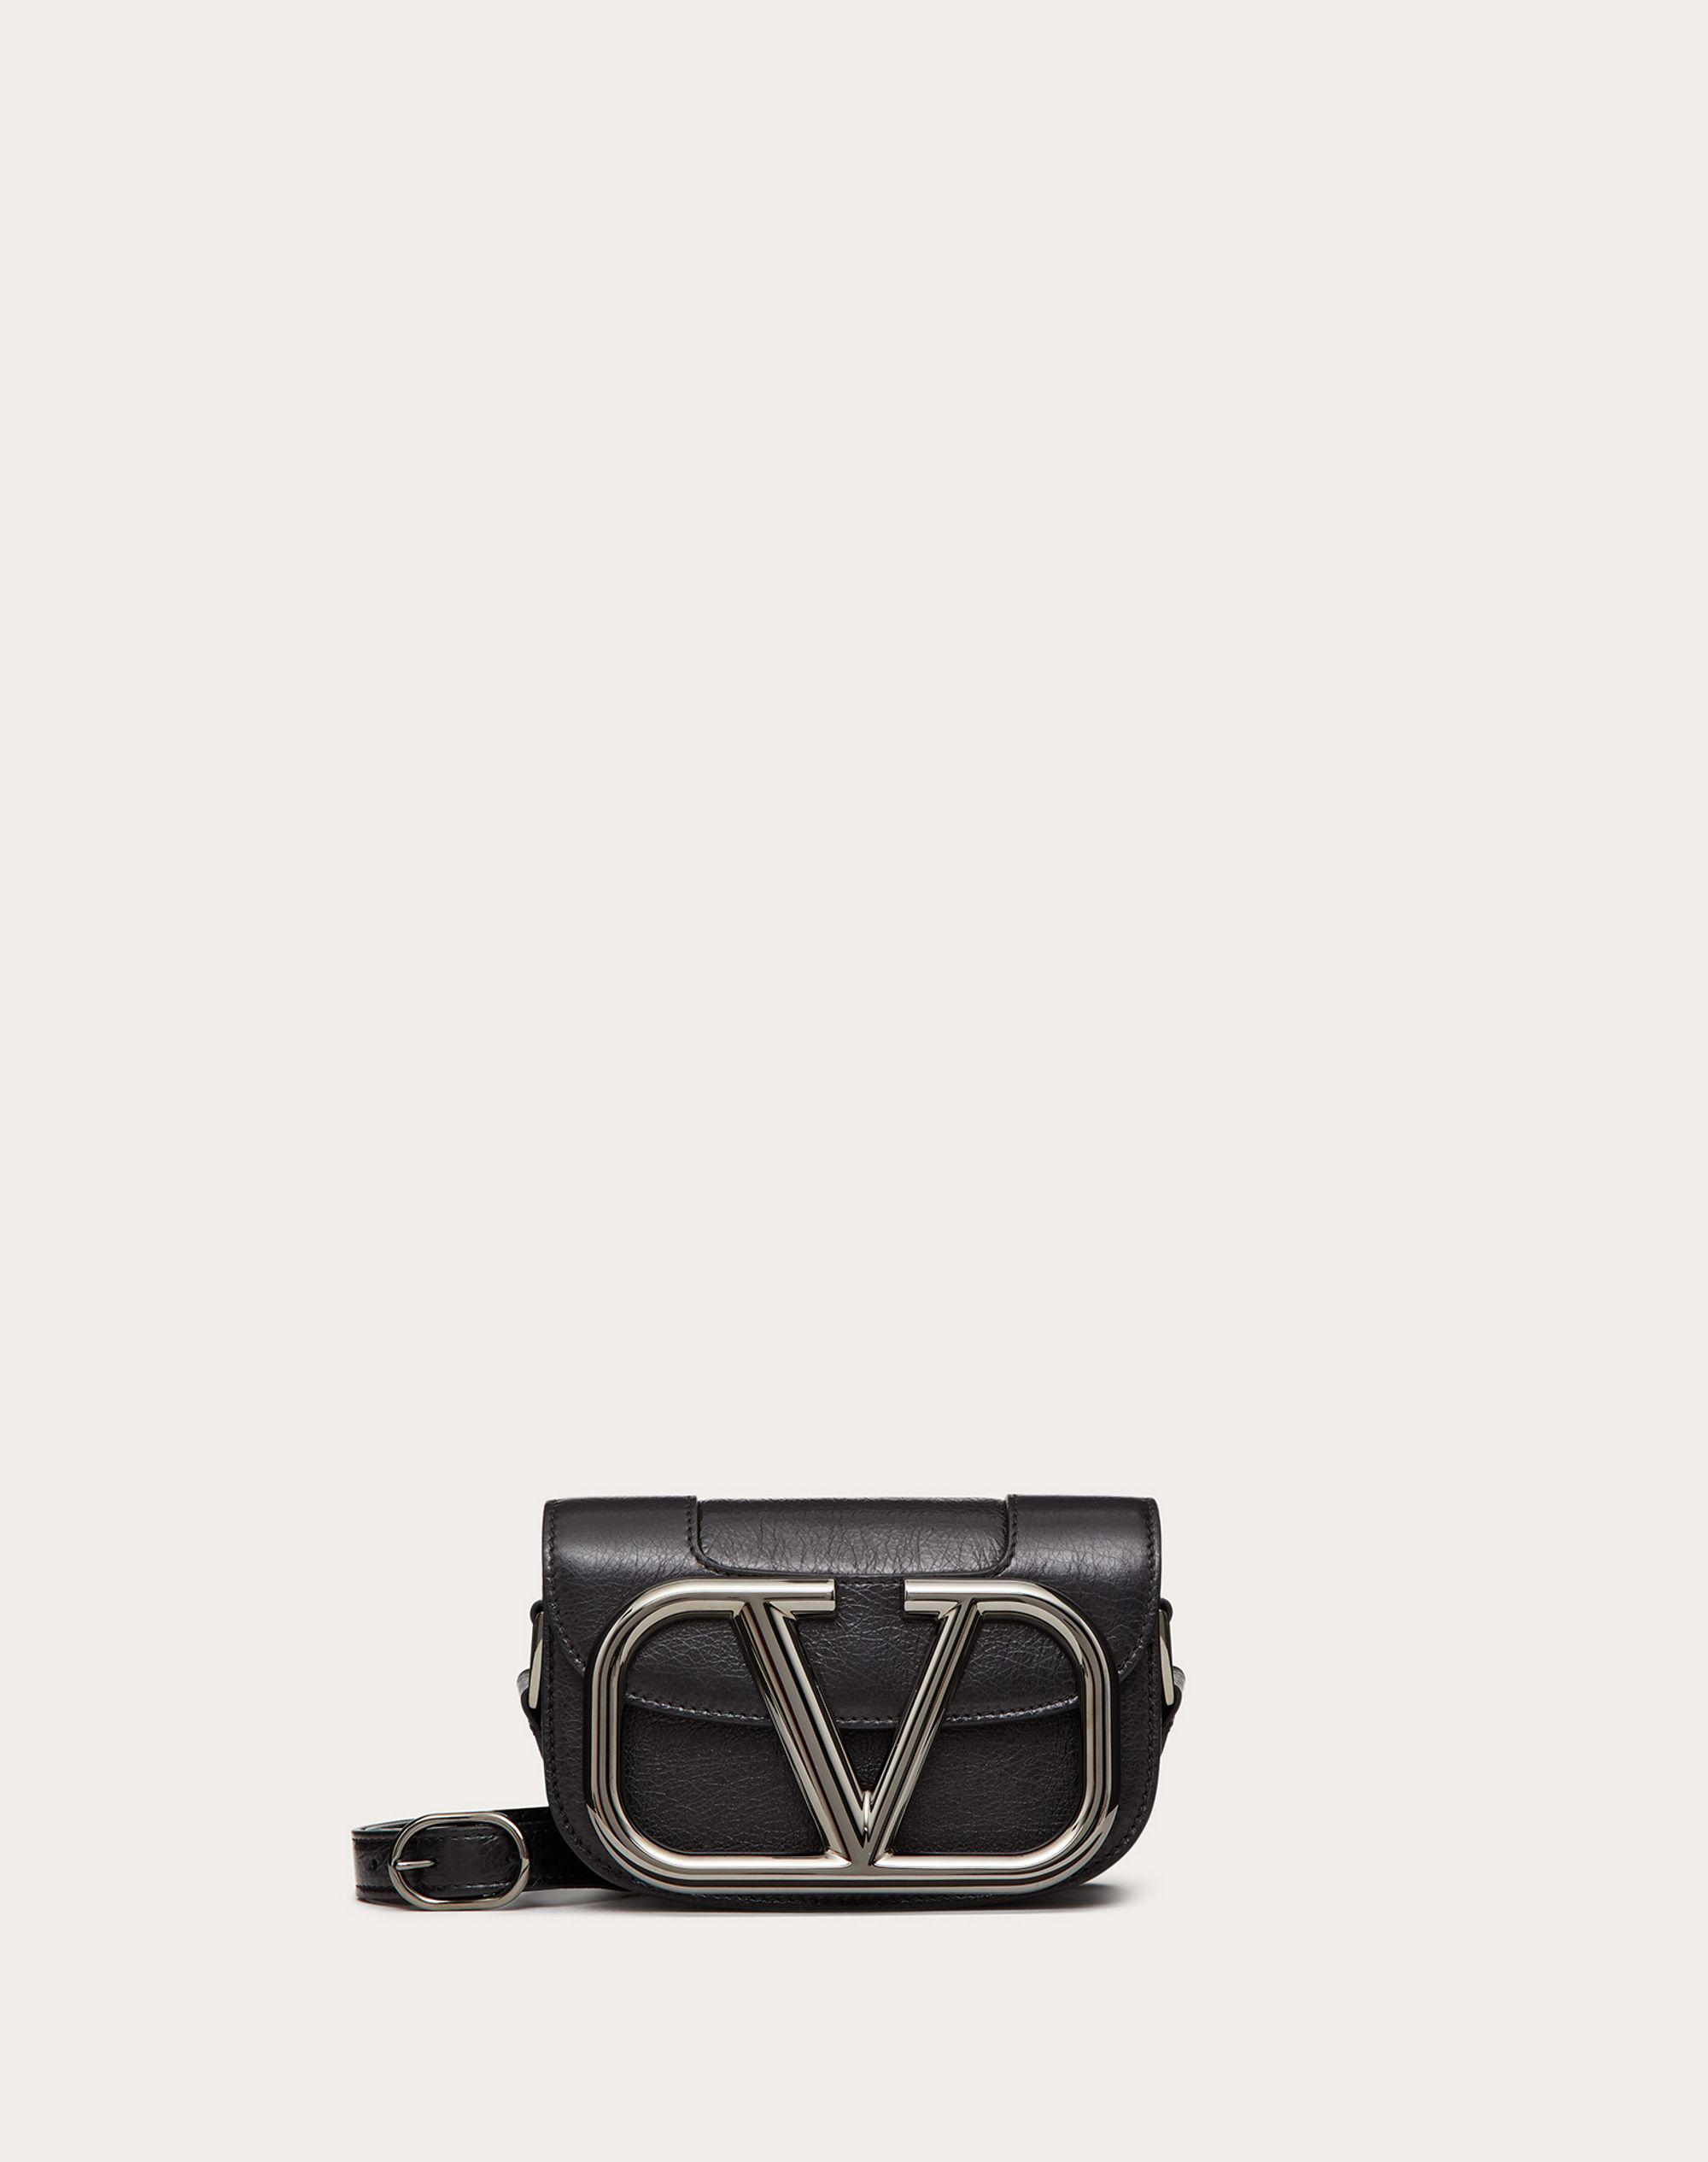 Small Supervee Calfskin Crossbody Bag with Crackle Effect